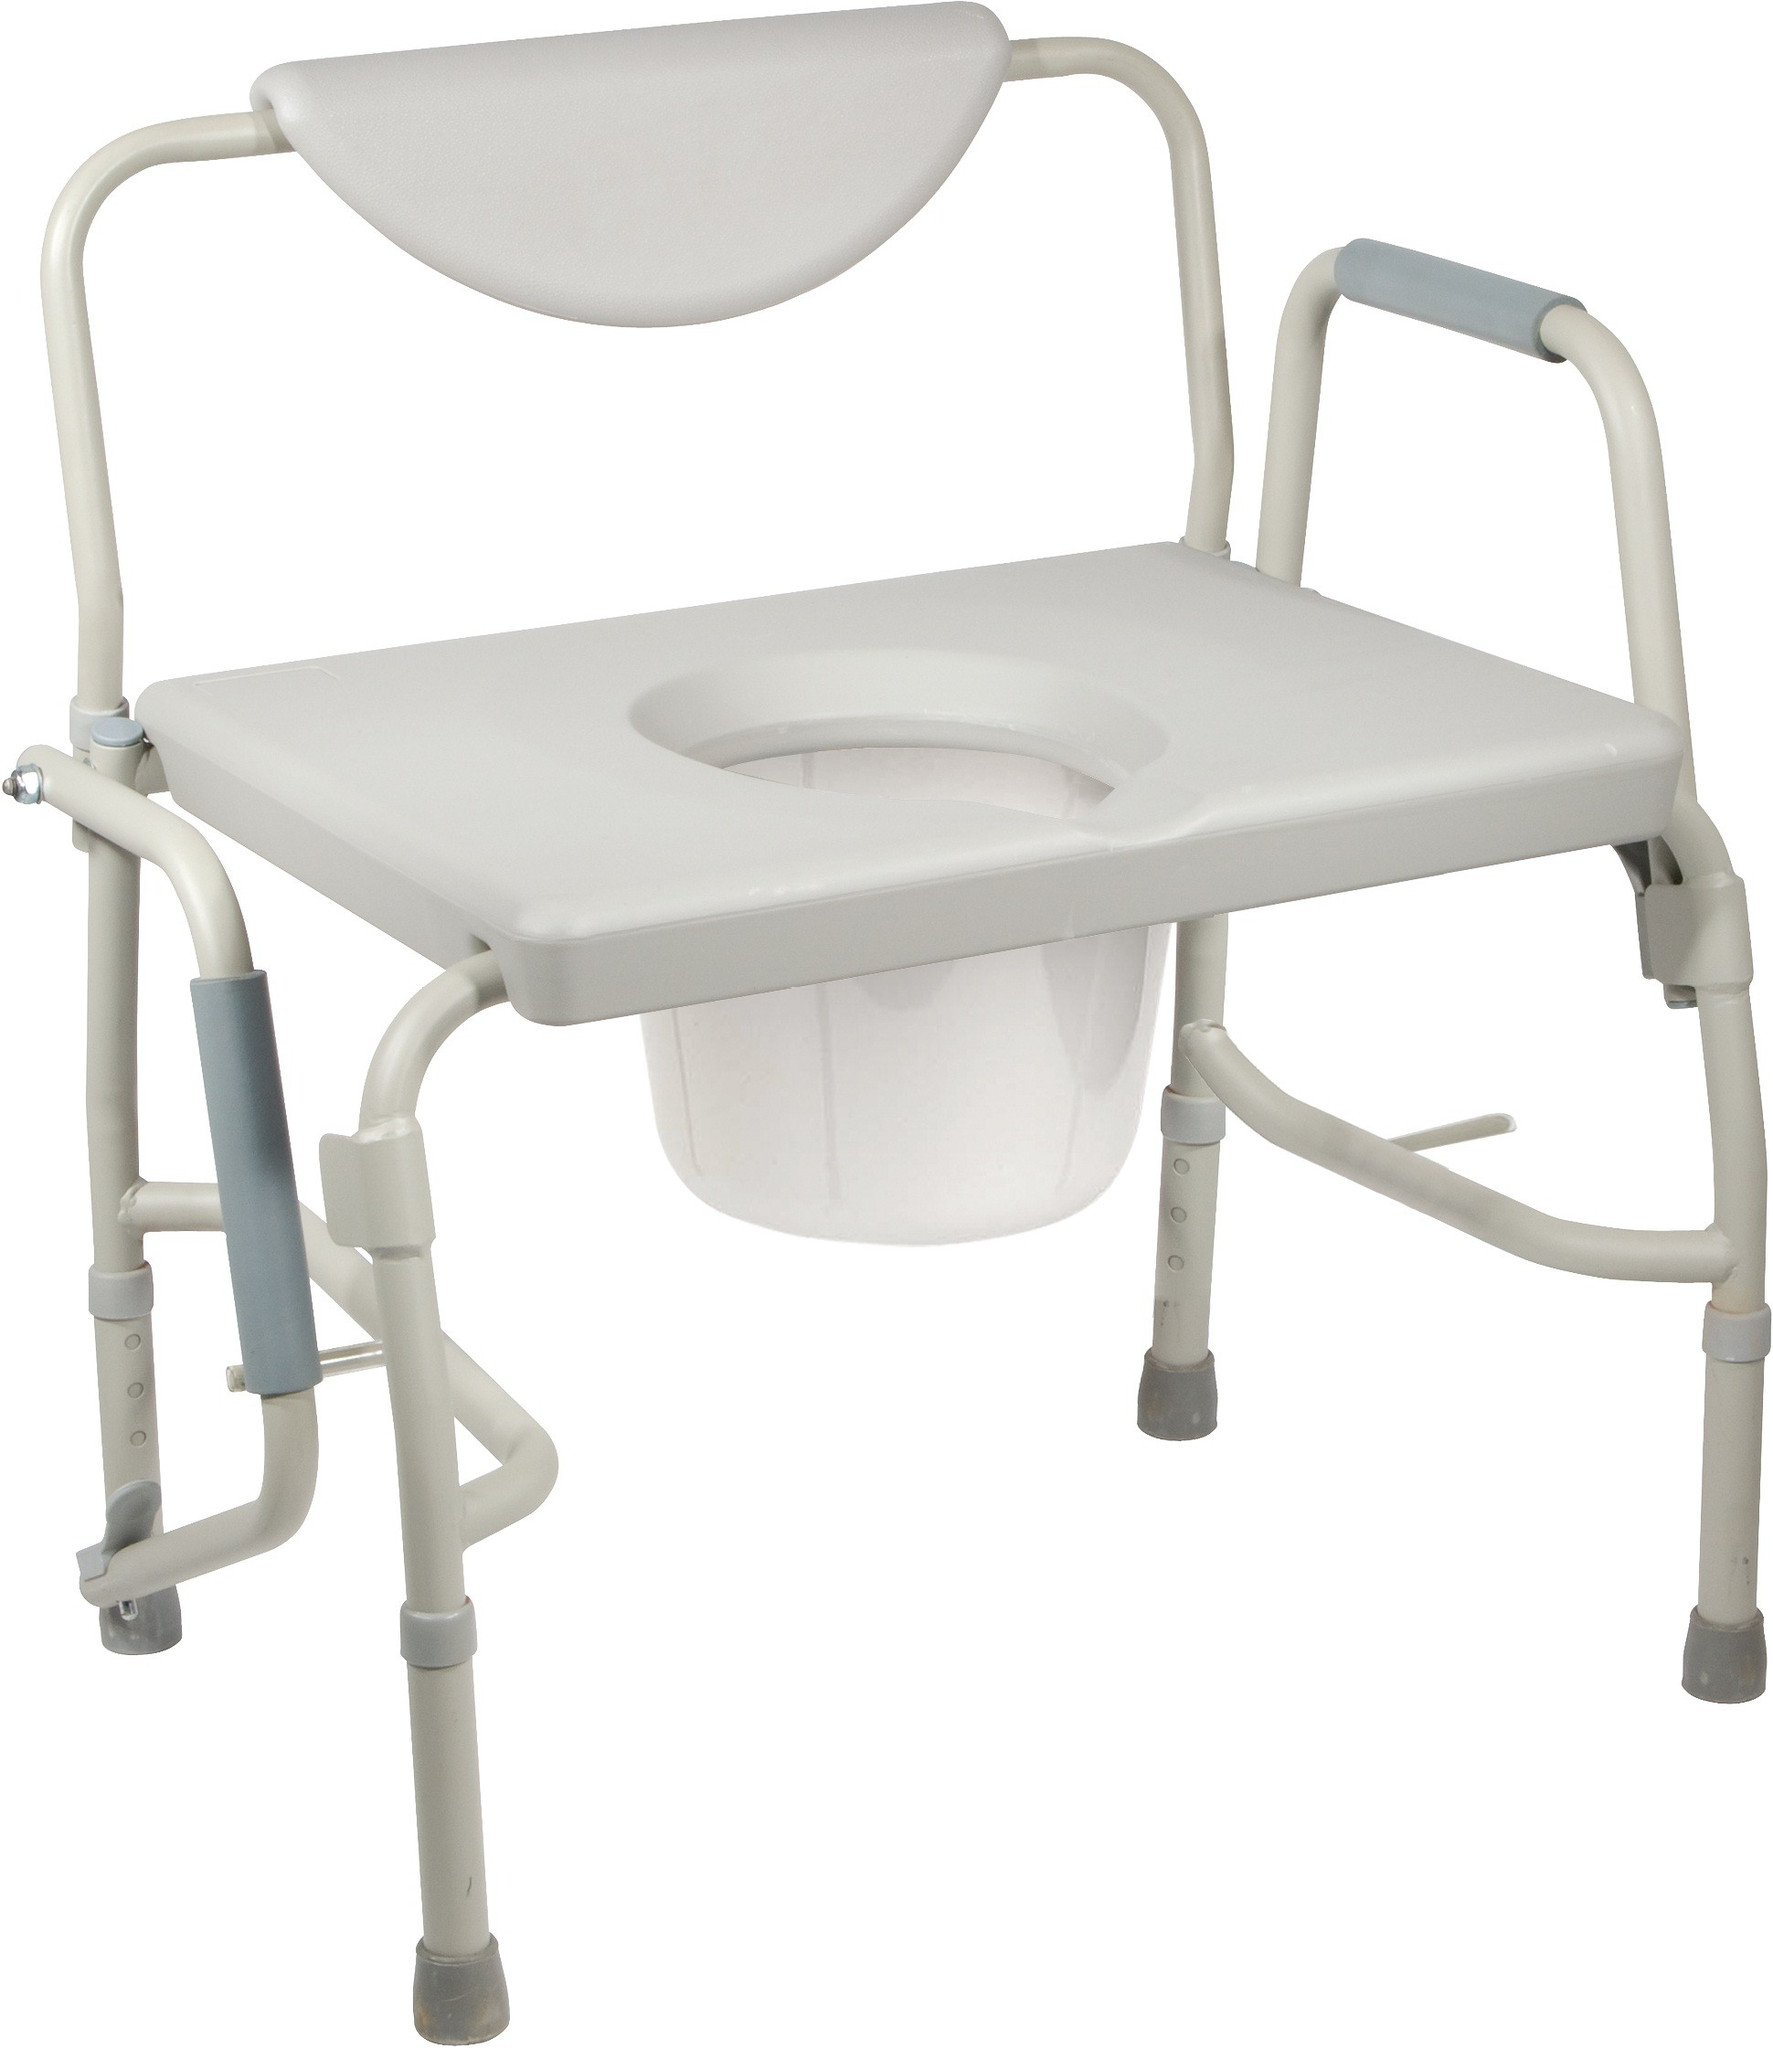 Commodes at Lowes | Toto Washlet | Colored Toilets